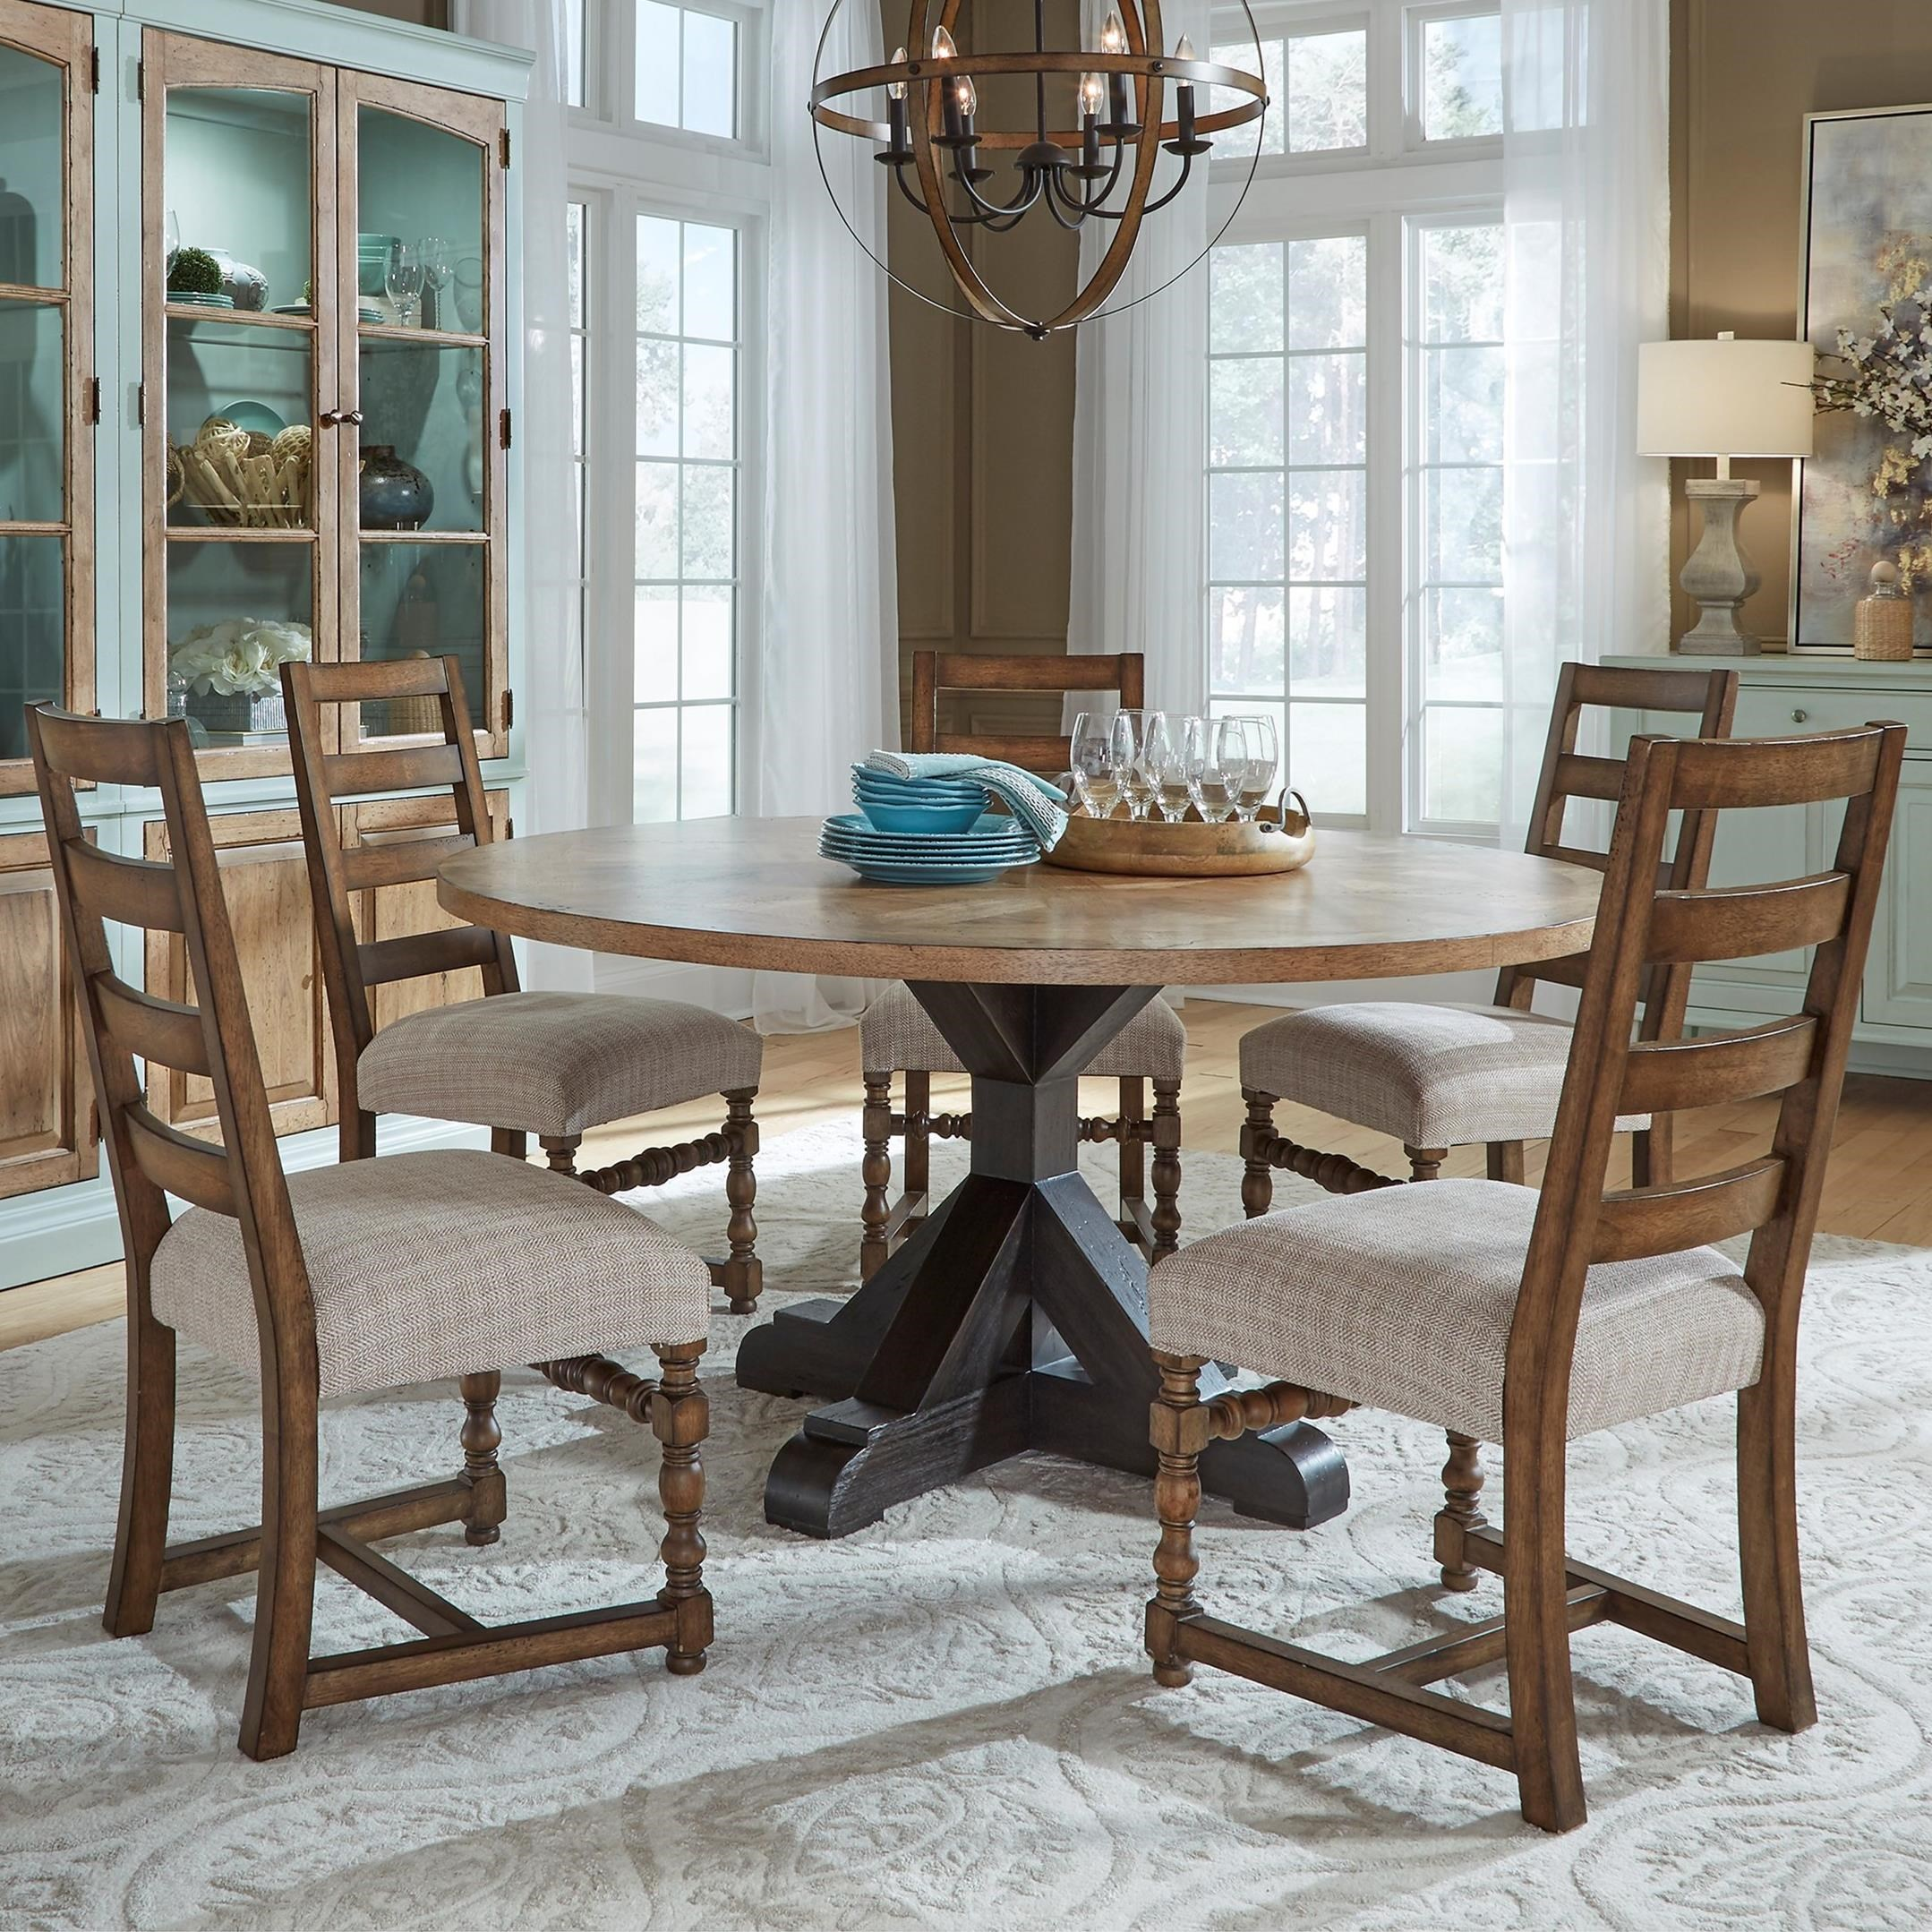 6-Piece Table and Chair Set